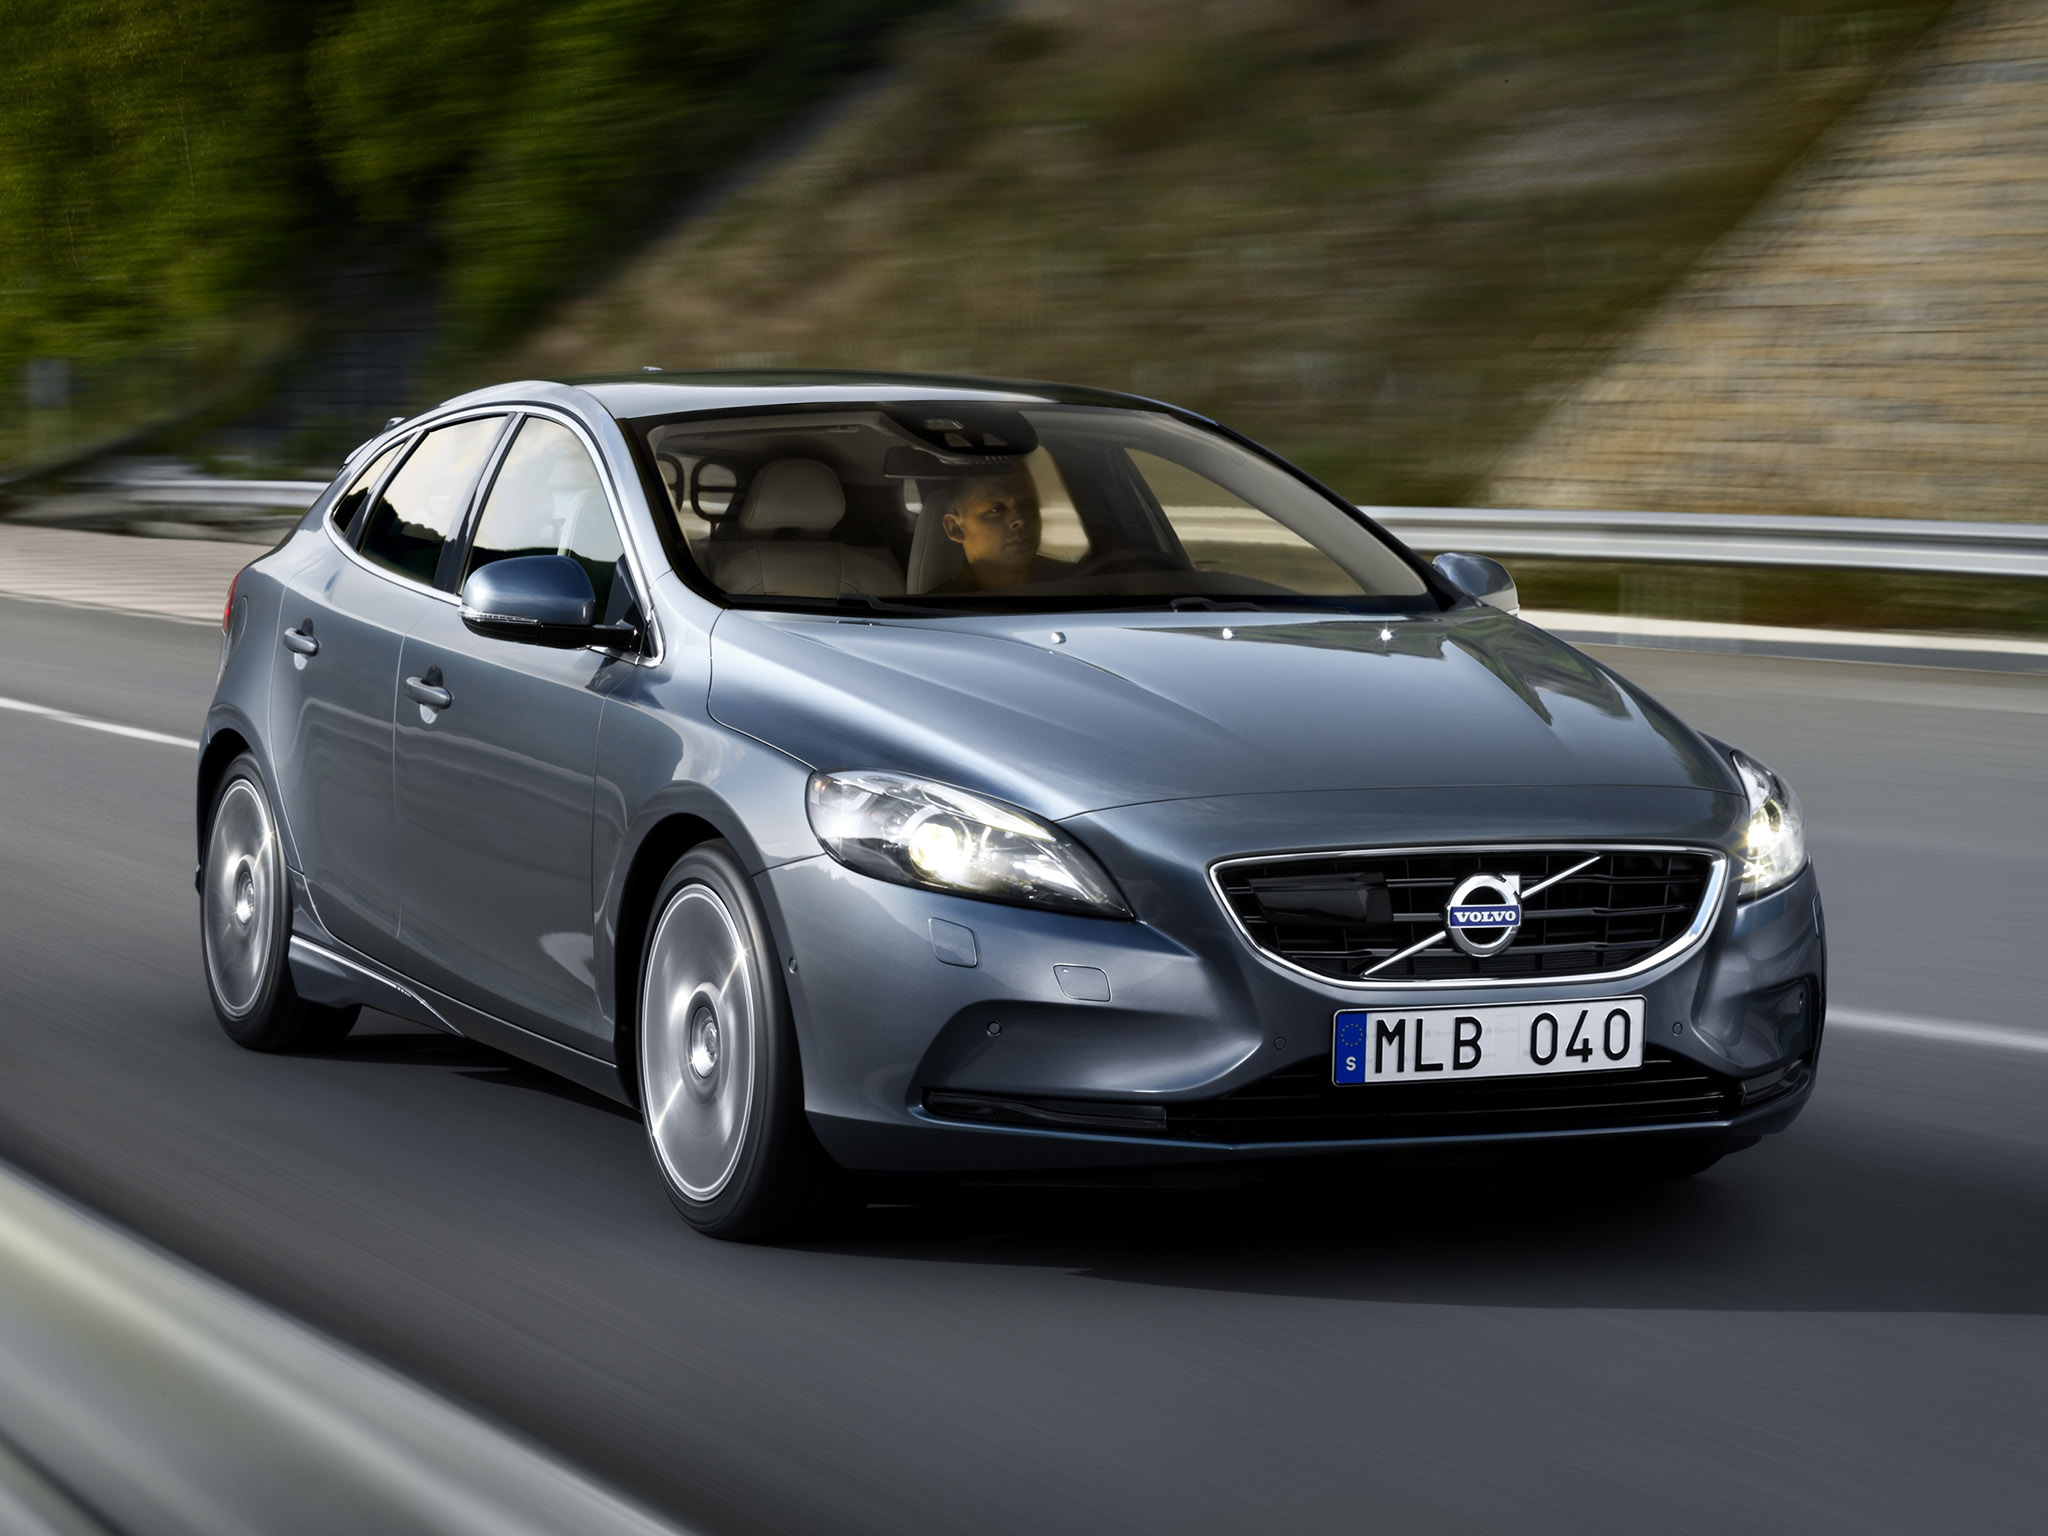 2012 Volvo V40 Hatchback 5-door